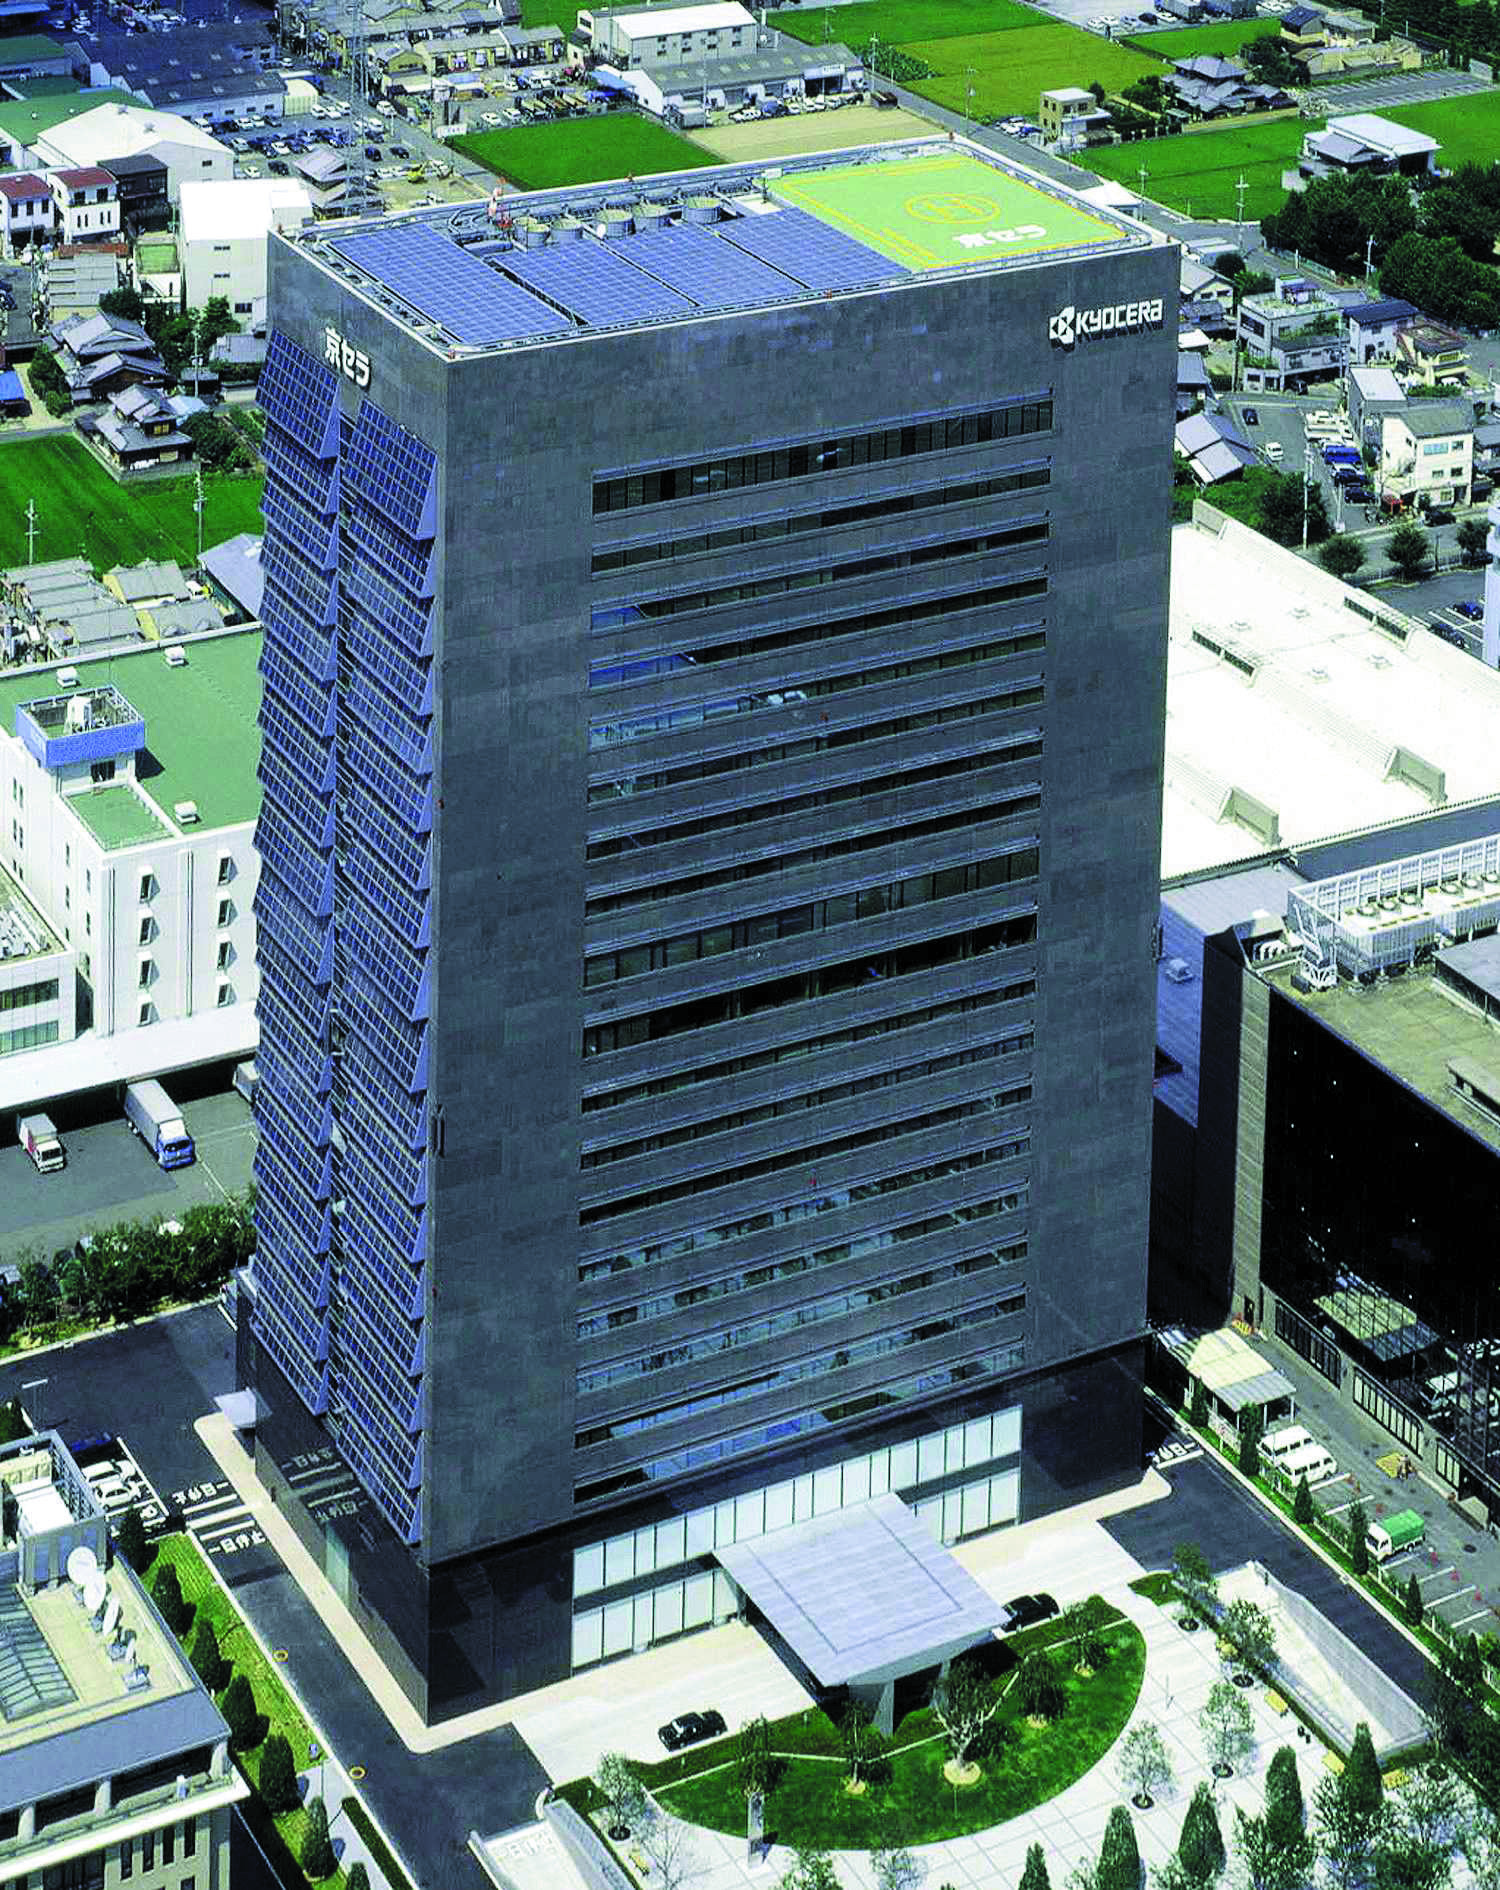 Kyocera Headquarters in Kyoto, Japan  As part of Kyocera's